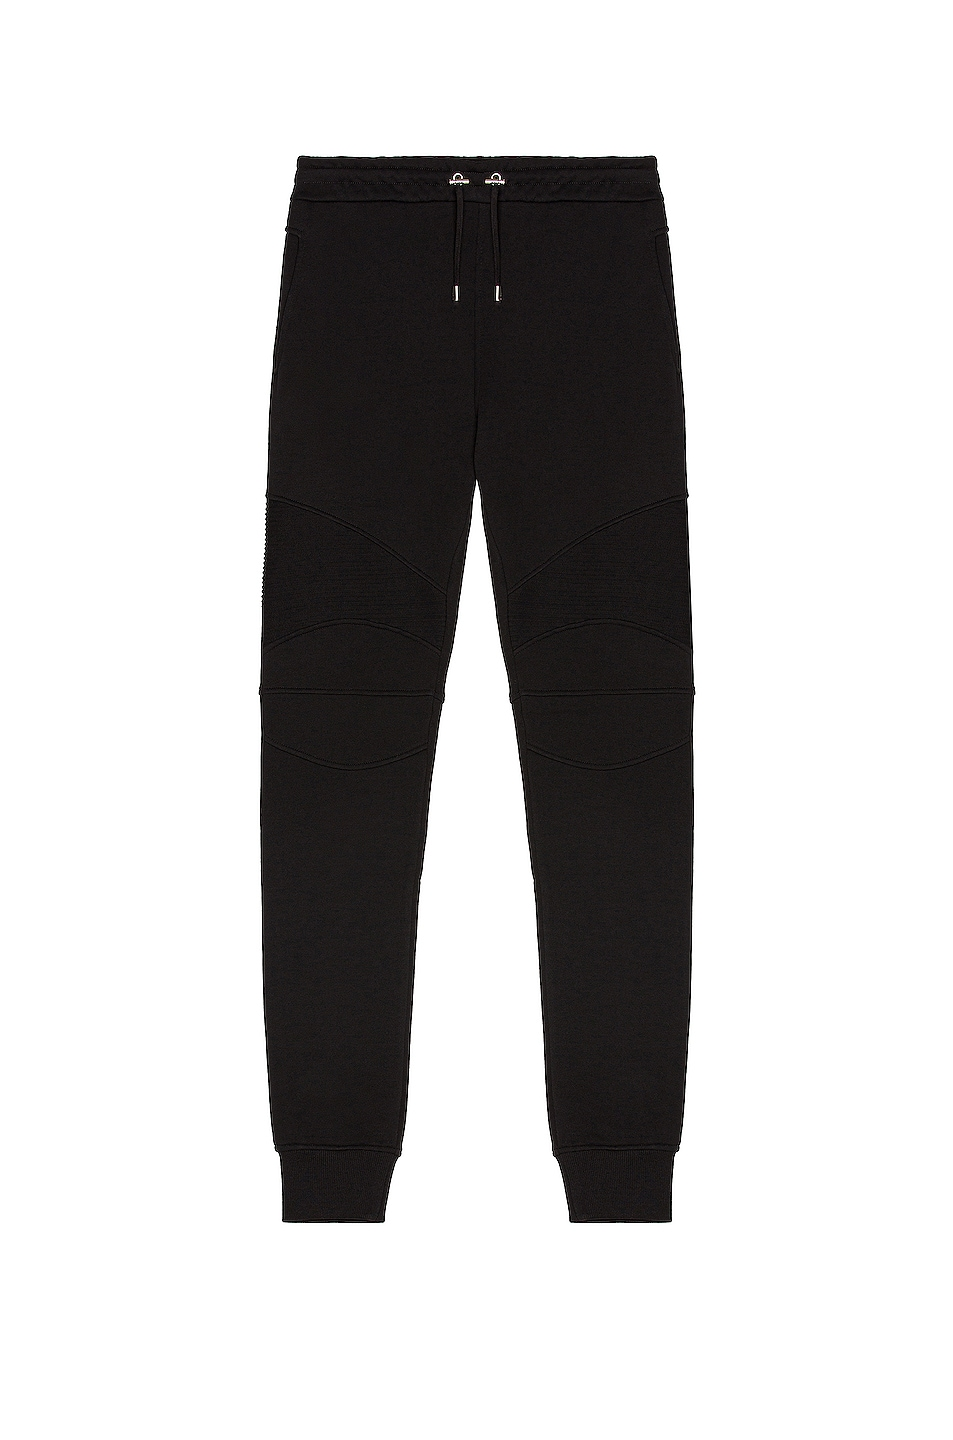 Image 1 of BALMAIN Flock Sweatpants in Black